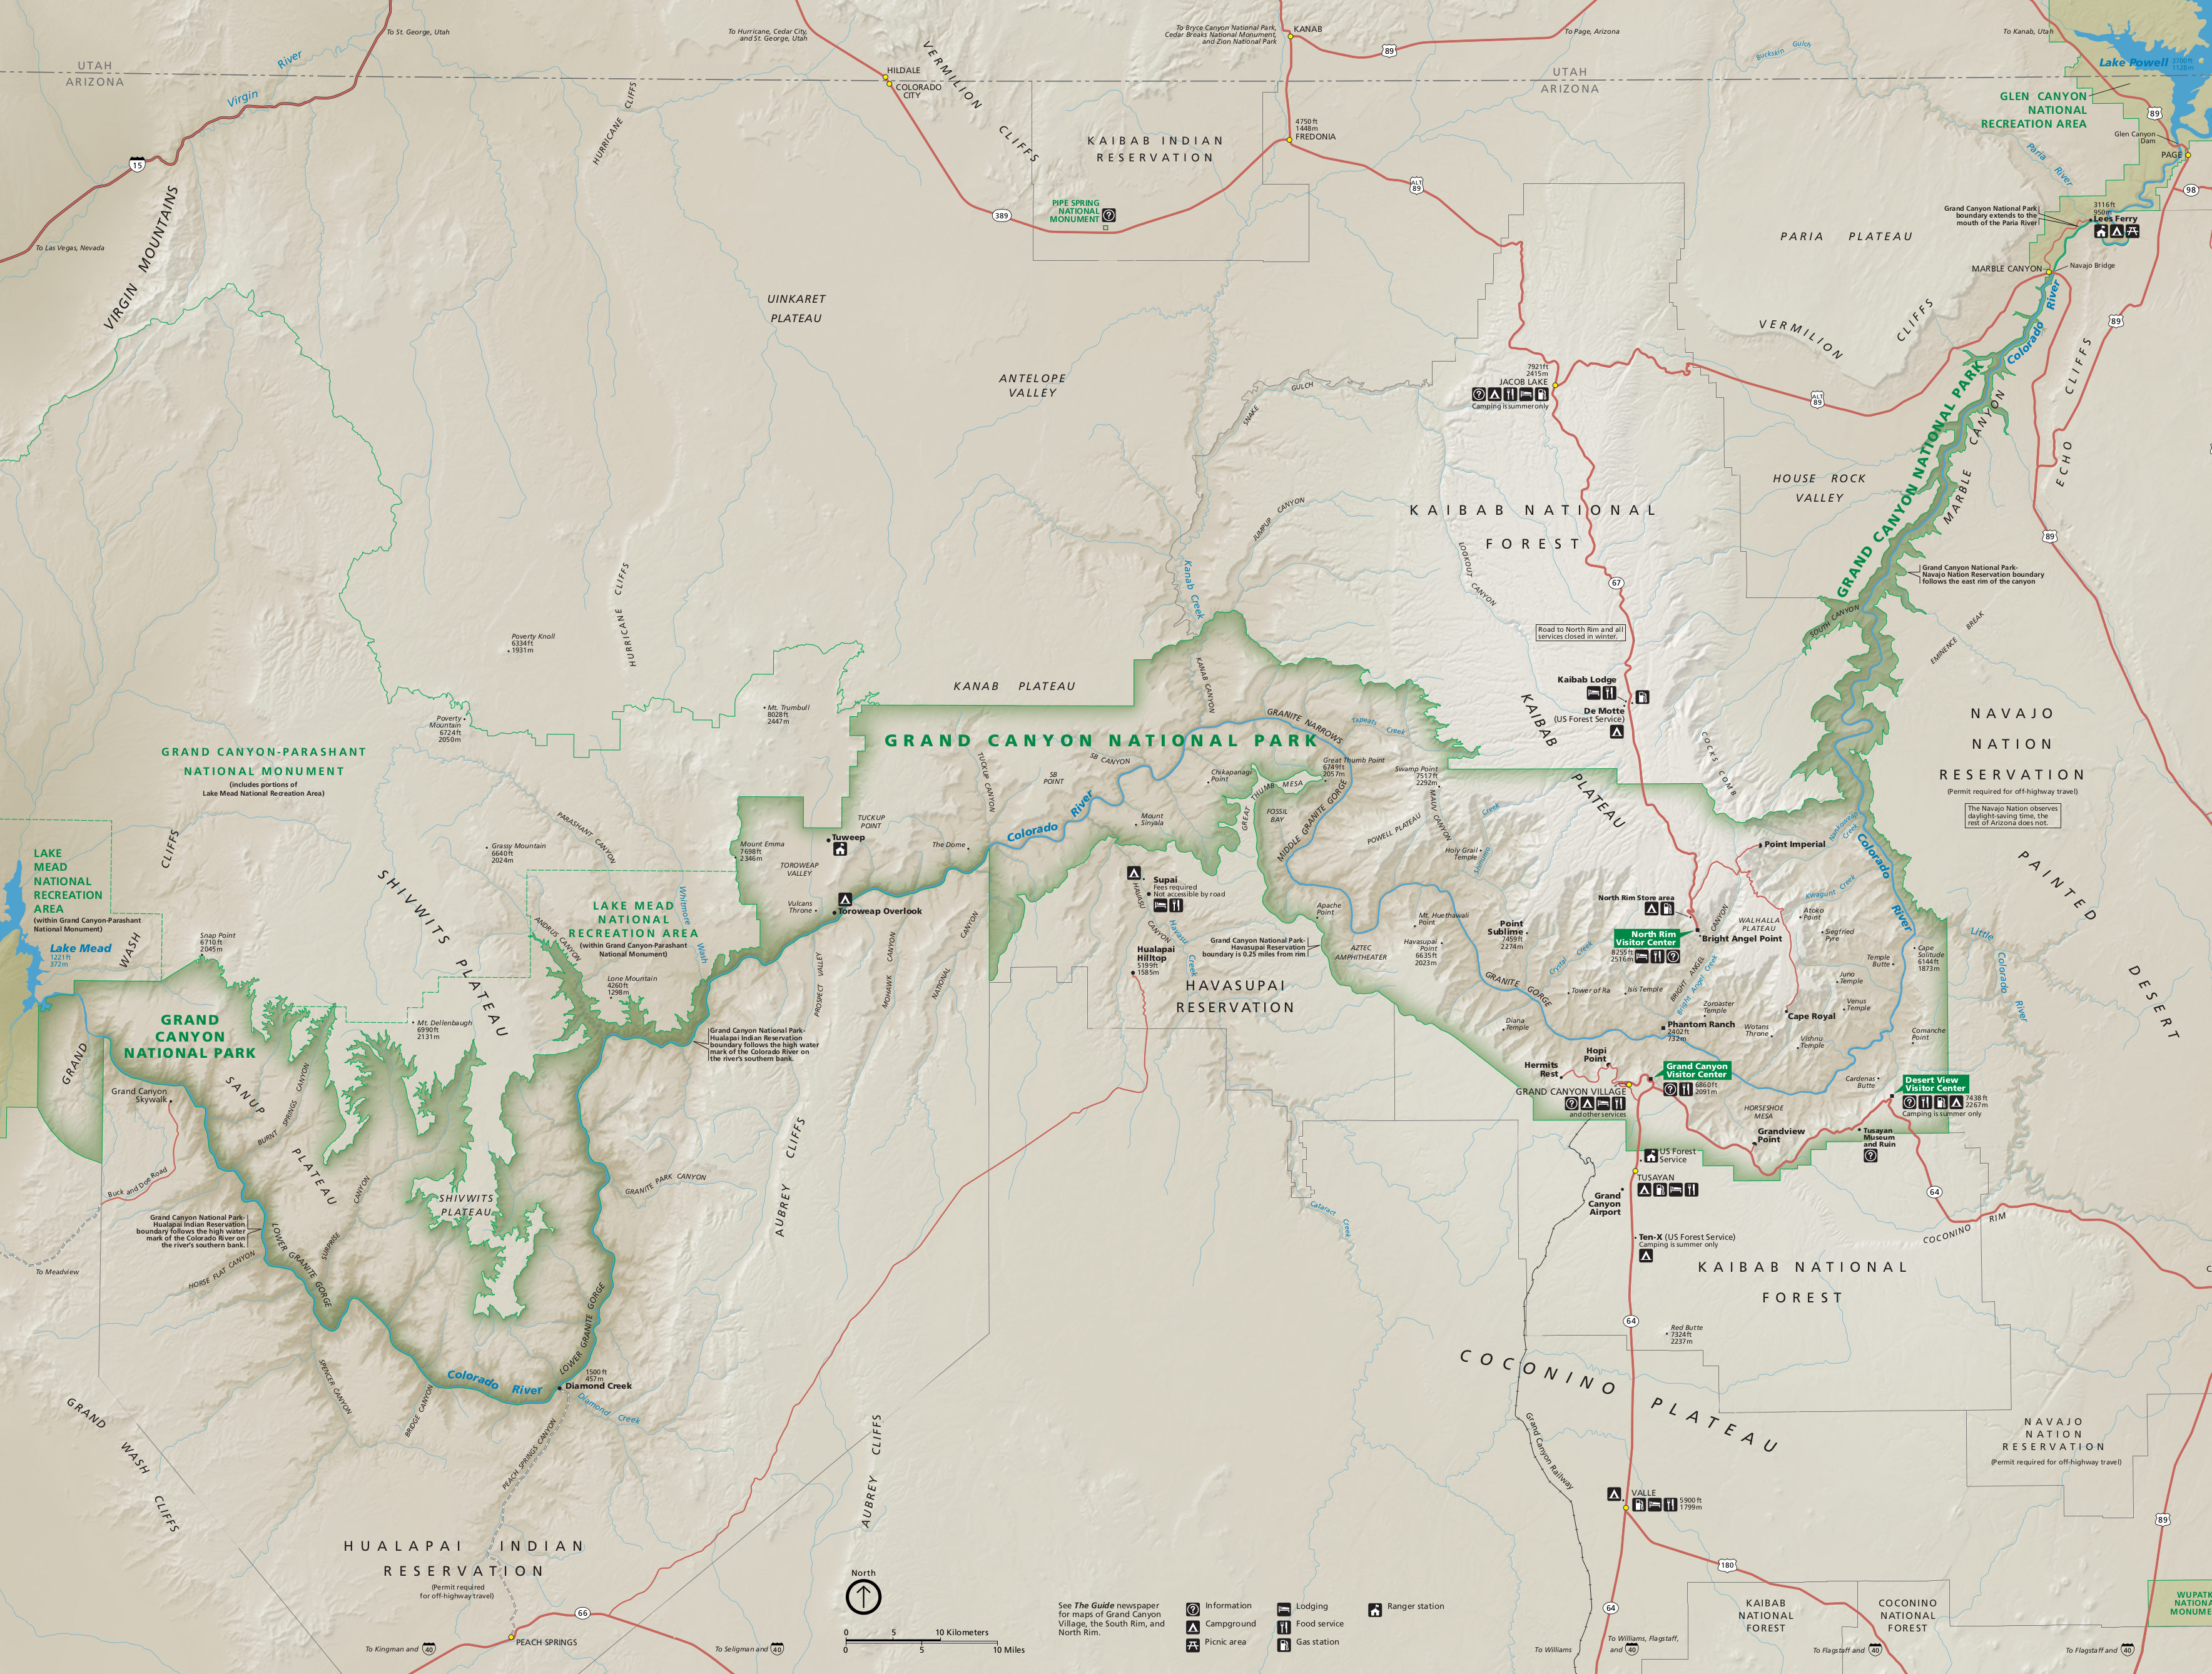 Grand Canyon Maps NPMapscom Just Free Maps Period - Us national parks interactive map